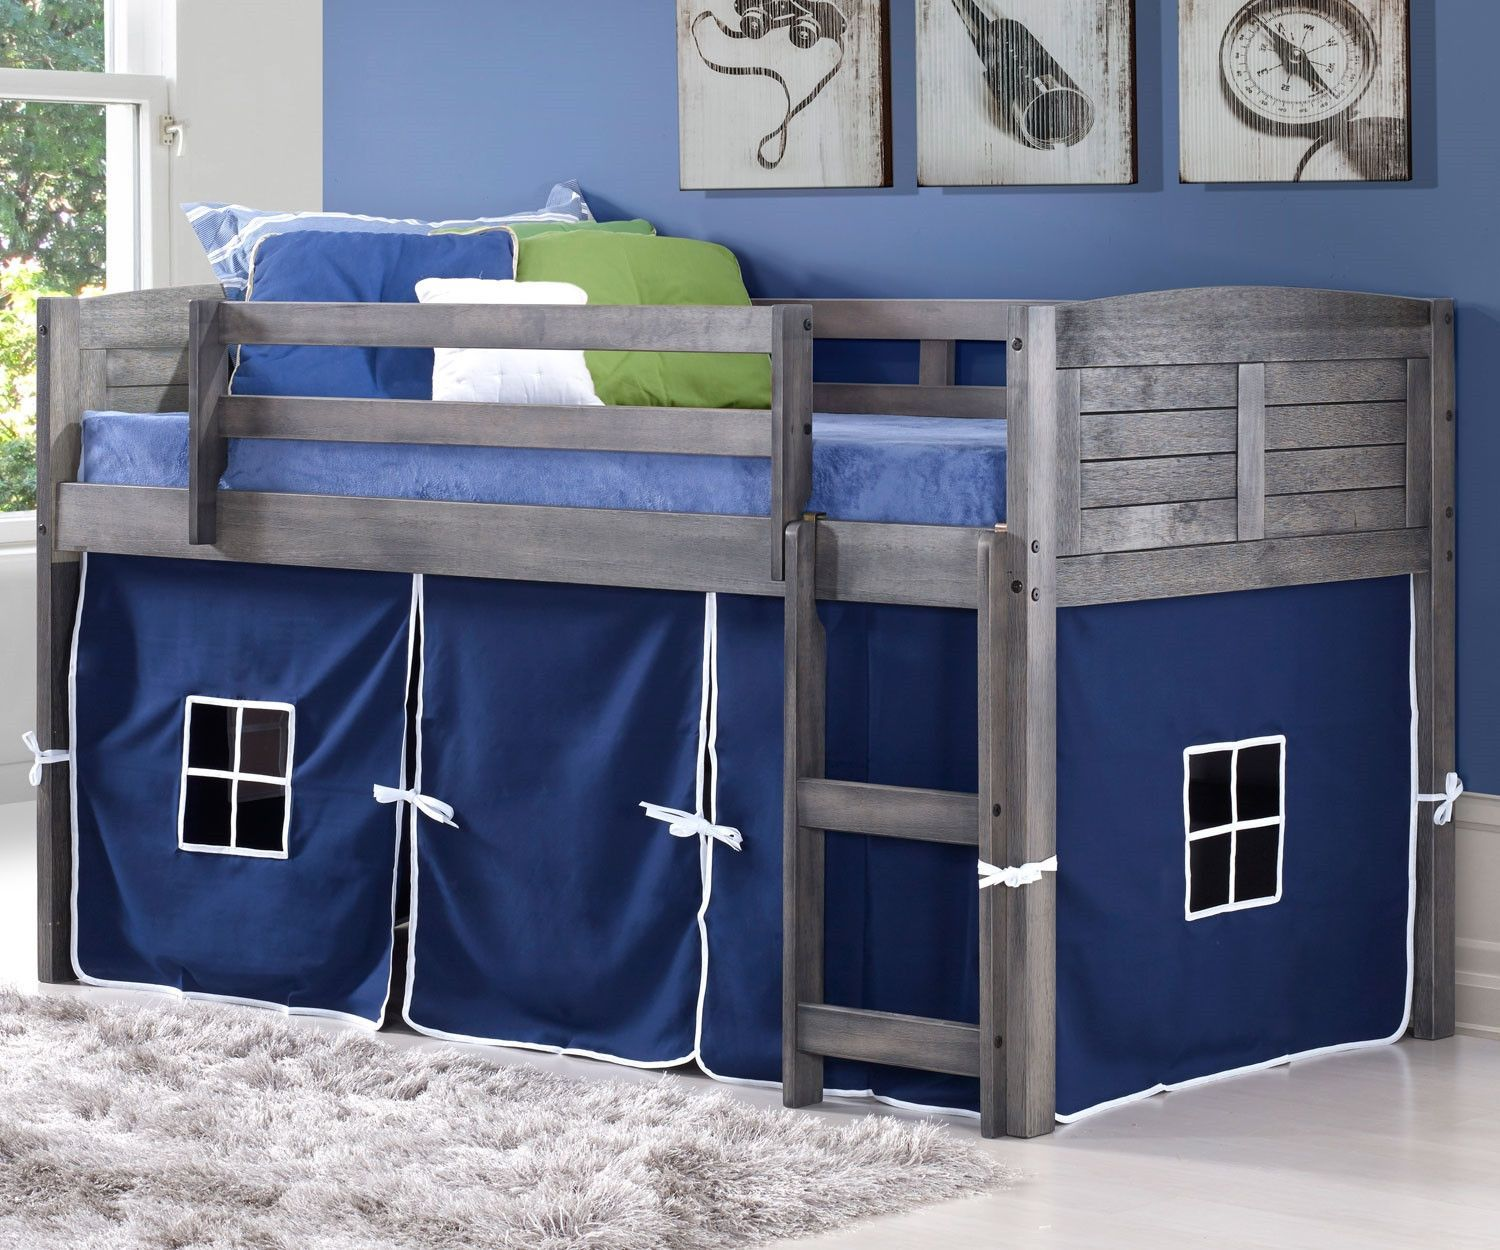 Twin bed loft bed  Jordan Gray Twin Loft Bed with Blue Tent  Twin beds Play spaces